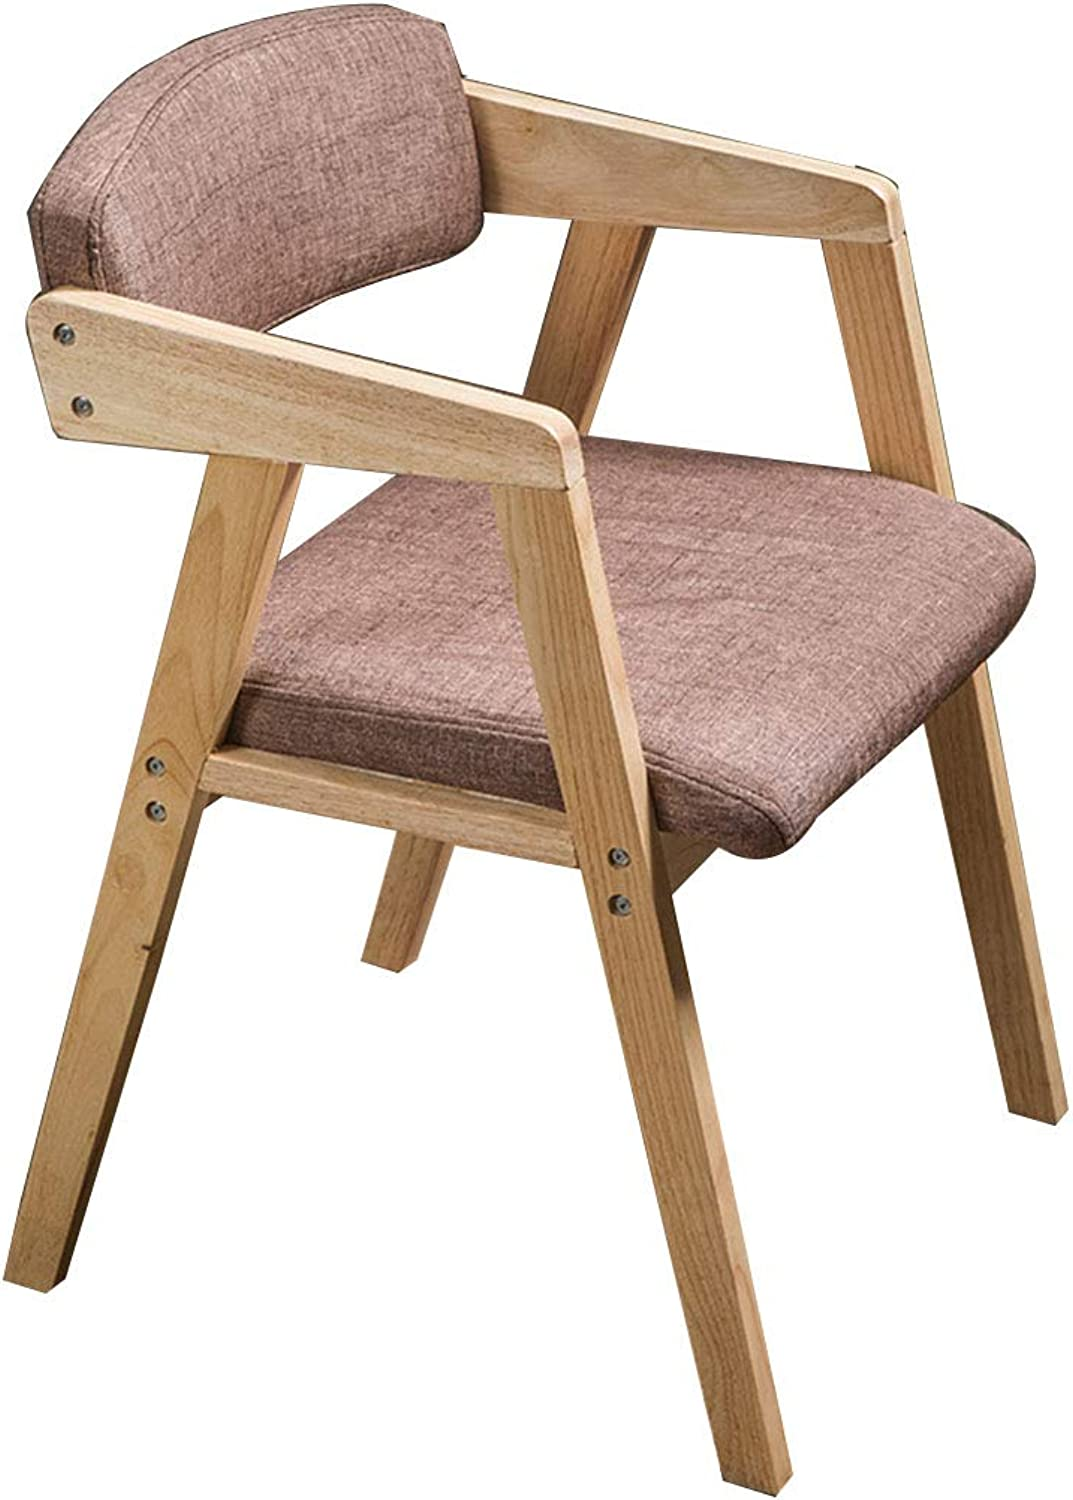 Solid Wood Dining Chair Home Restaurant Backrest Stool Retro with Armrest Desk Chair - Six colors Optional